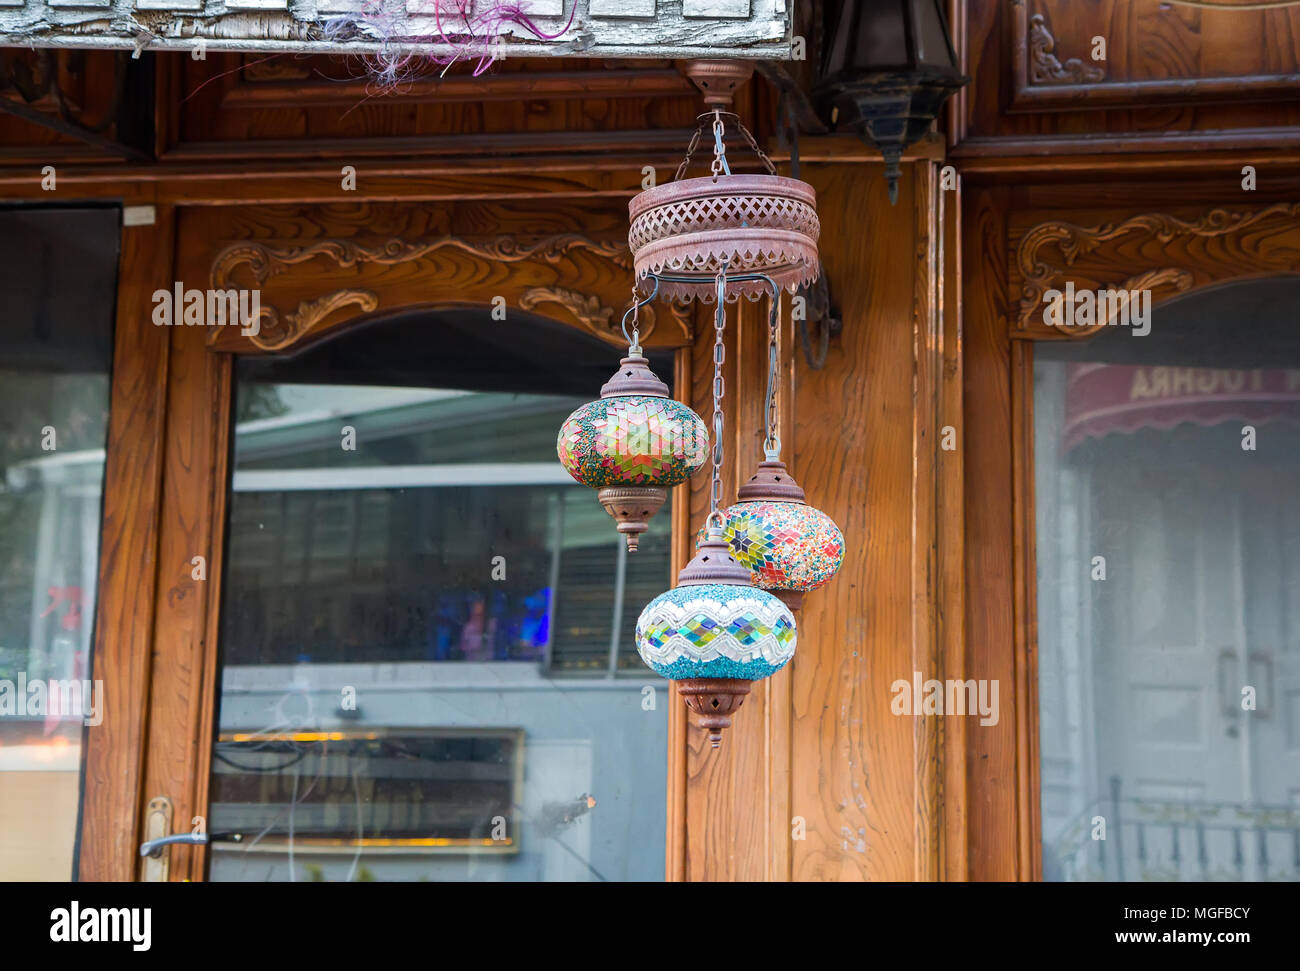 Traditional Multi Colored Glass Arabic Lamp Near The Wooden Front